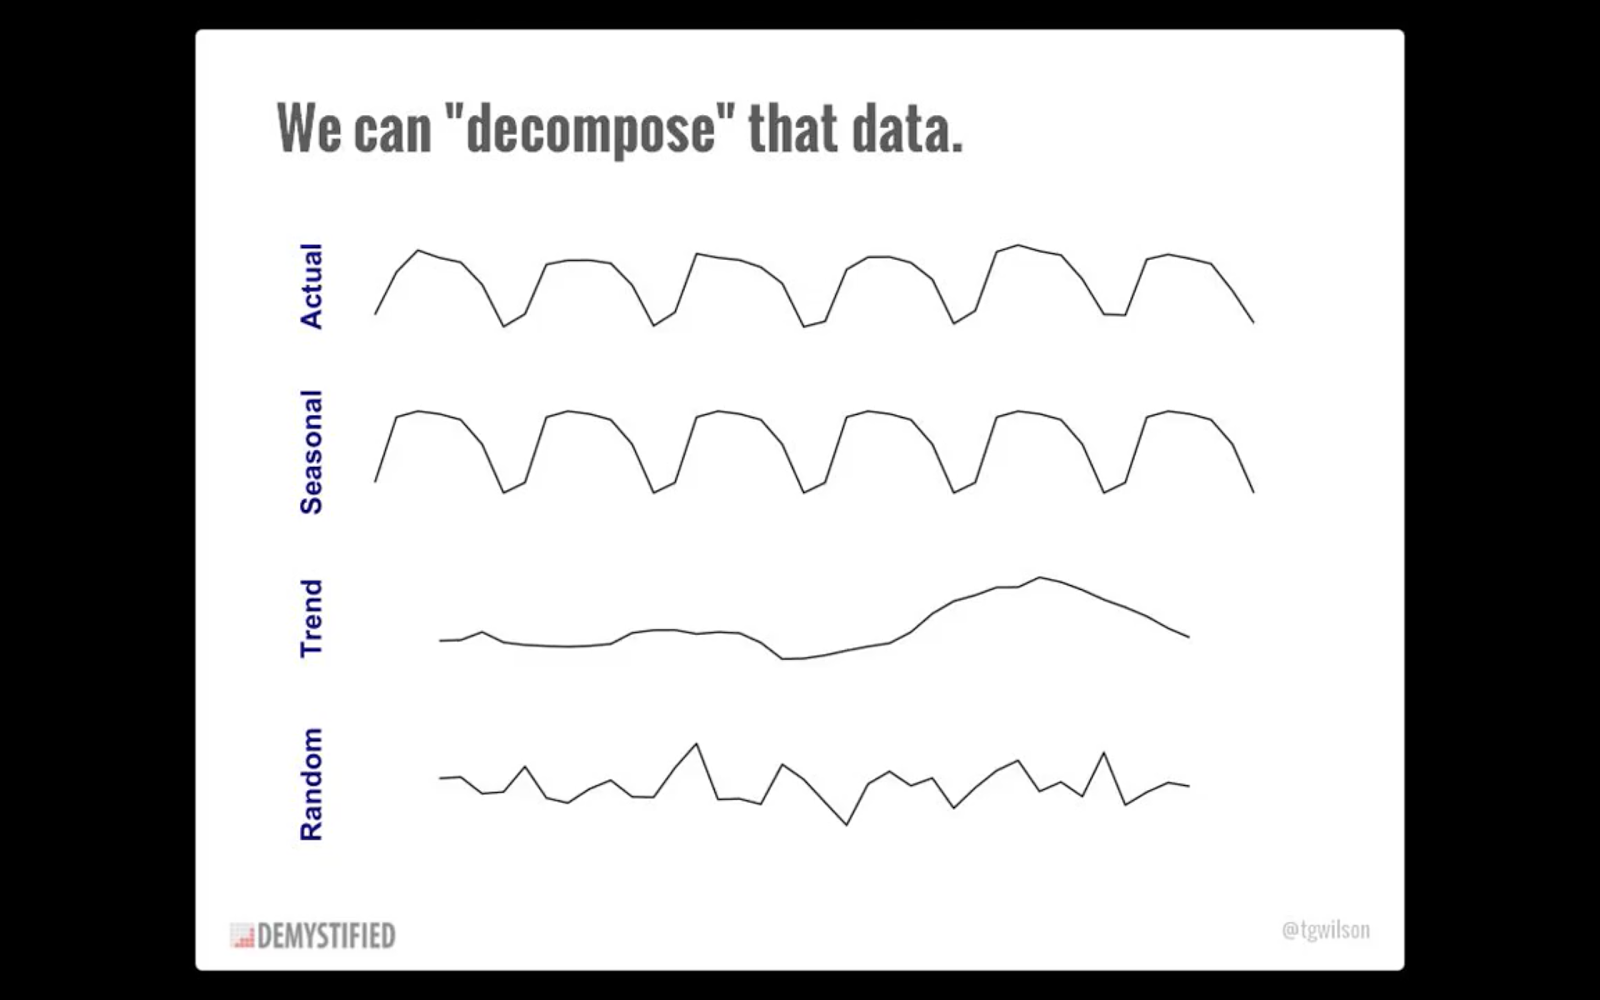 Digital marketing data is very susceptible to seasonal fluctuations. That's why it's helpful to look at your analytics on a weekly basis to minimize making decisions based on noise.  Image via Tim Wilson, Analytics Demystified.